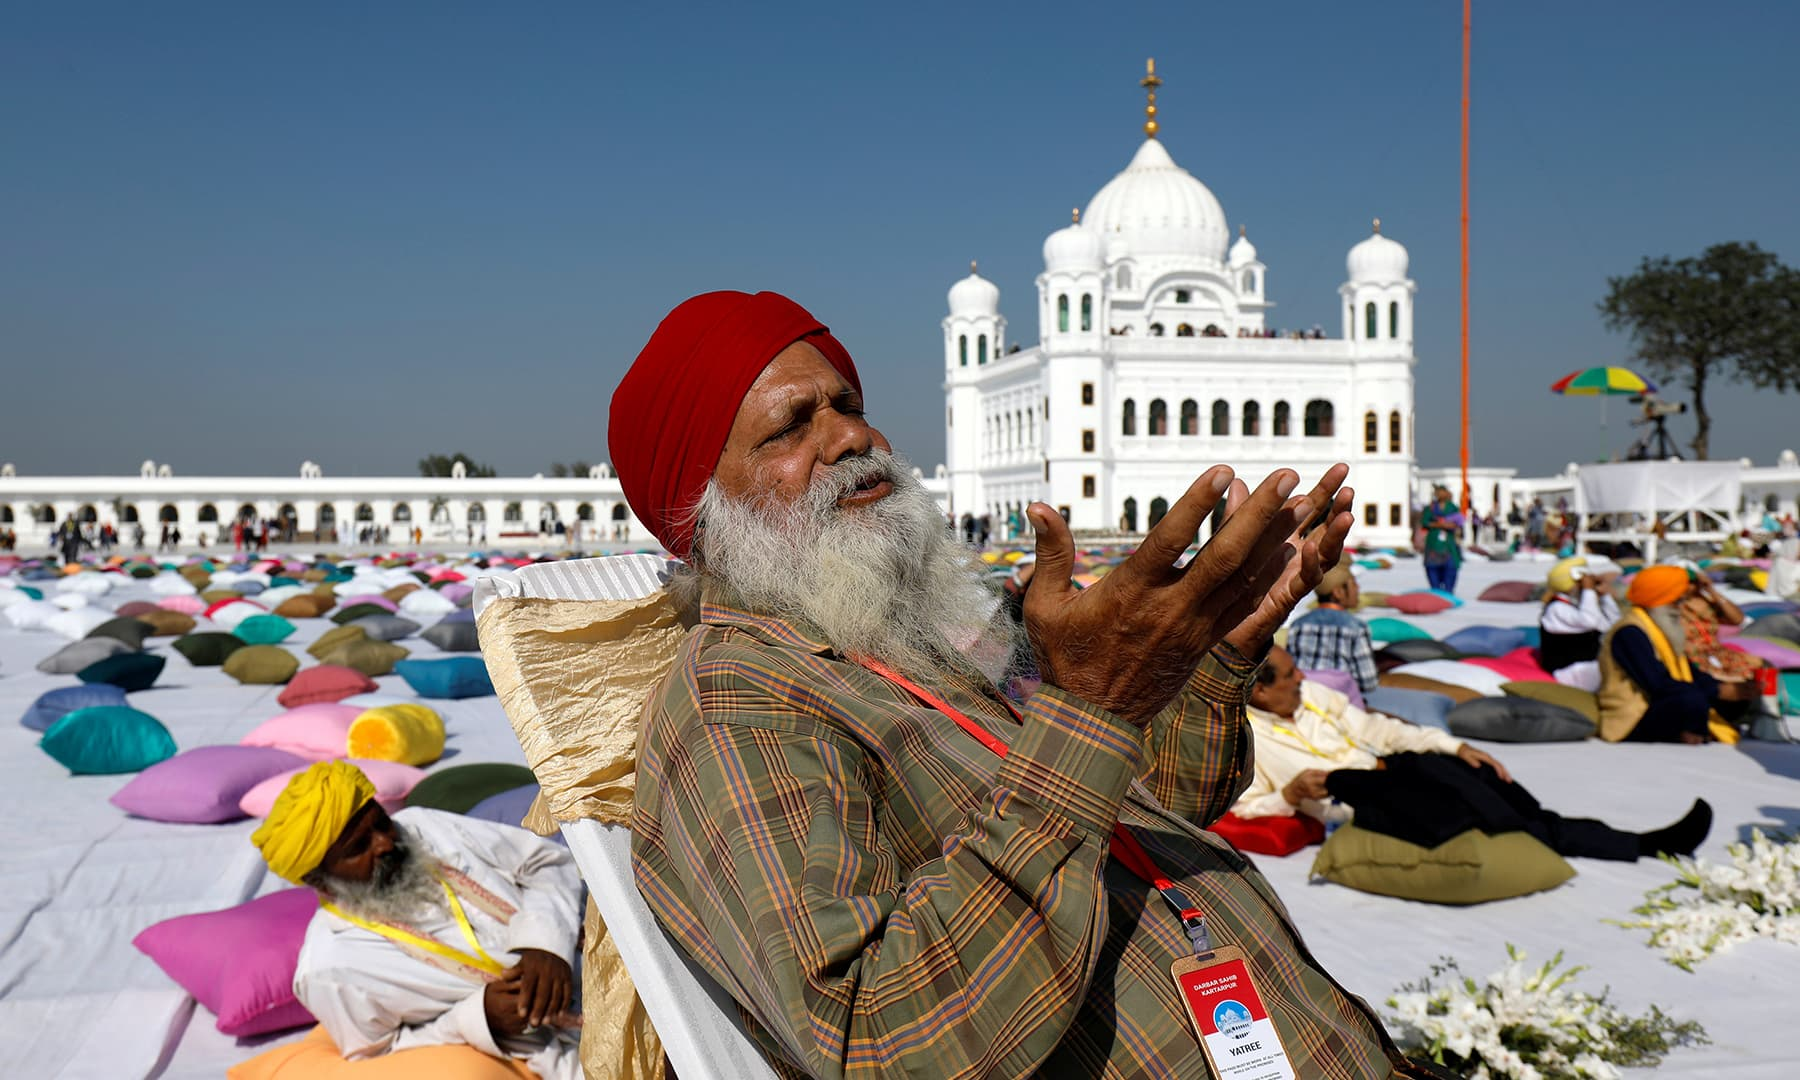 An Indian Sikh pilgrim offers prayers as he visits the Gurdwara Darbar Sahib in Kartarpur on Saturday. — Reuters